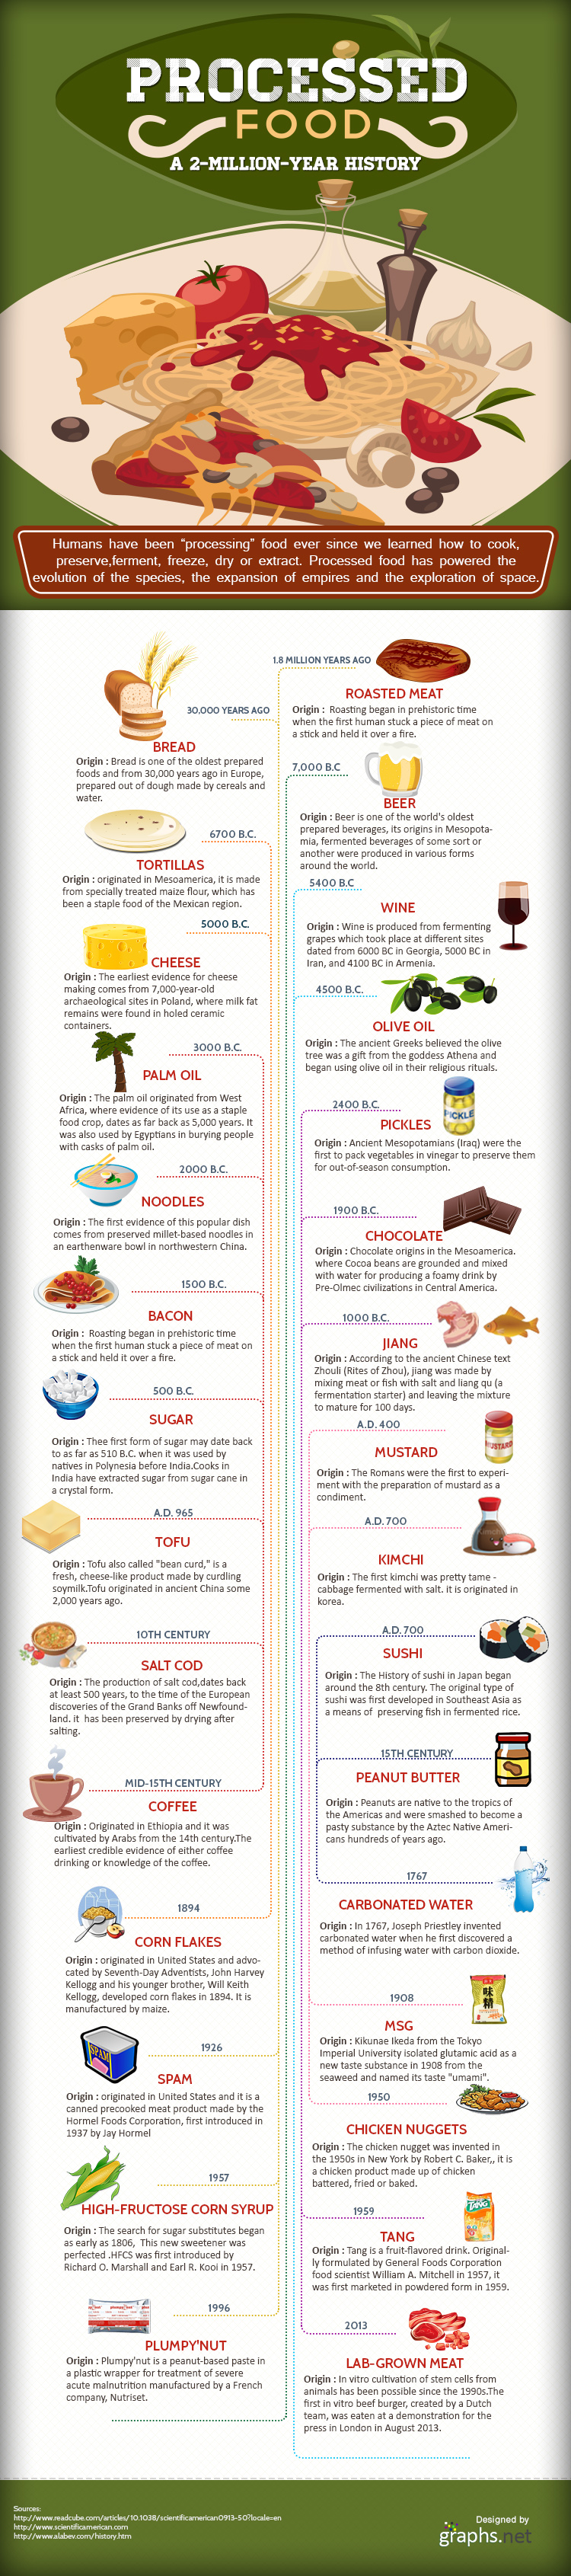 Processed Food- A 2-Million-Year History